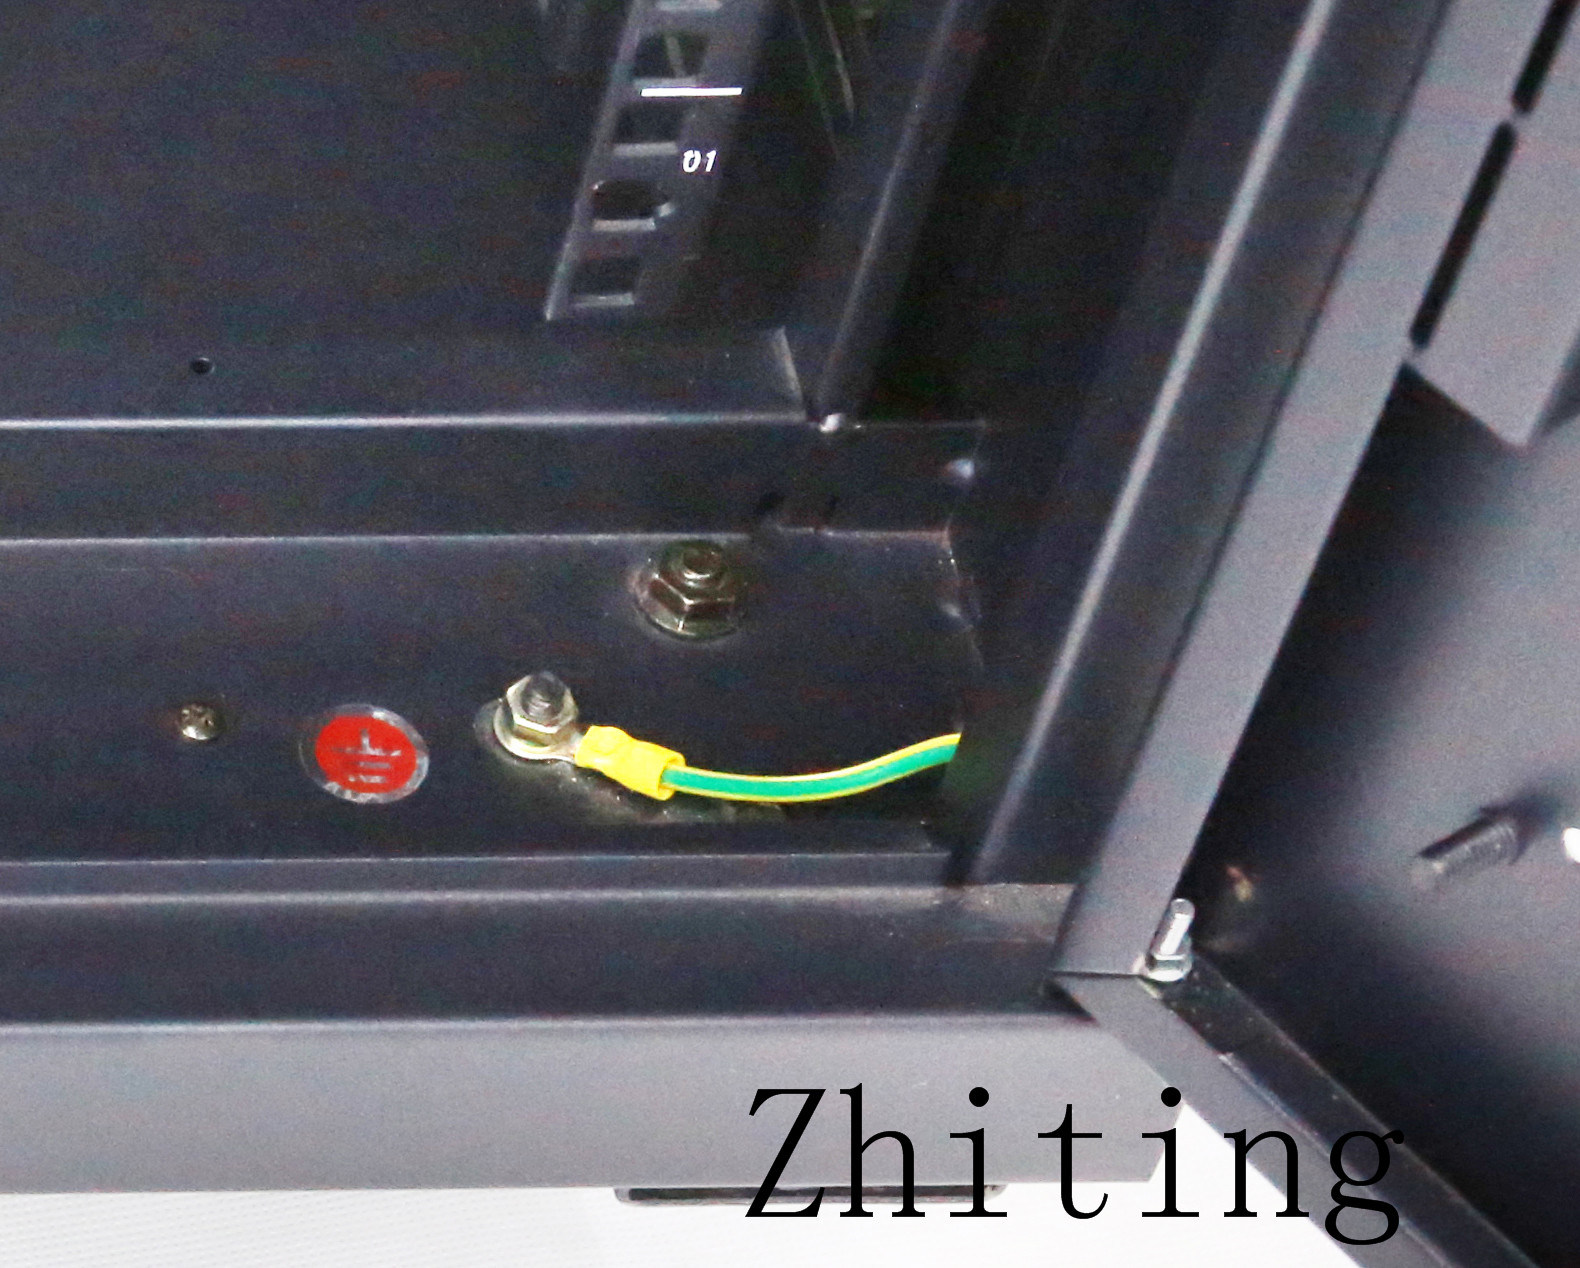 19 Inch Zt Ls Series Server Network Rack Used in Micro-Module